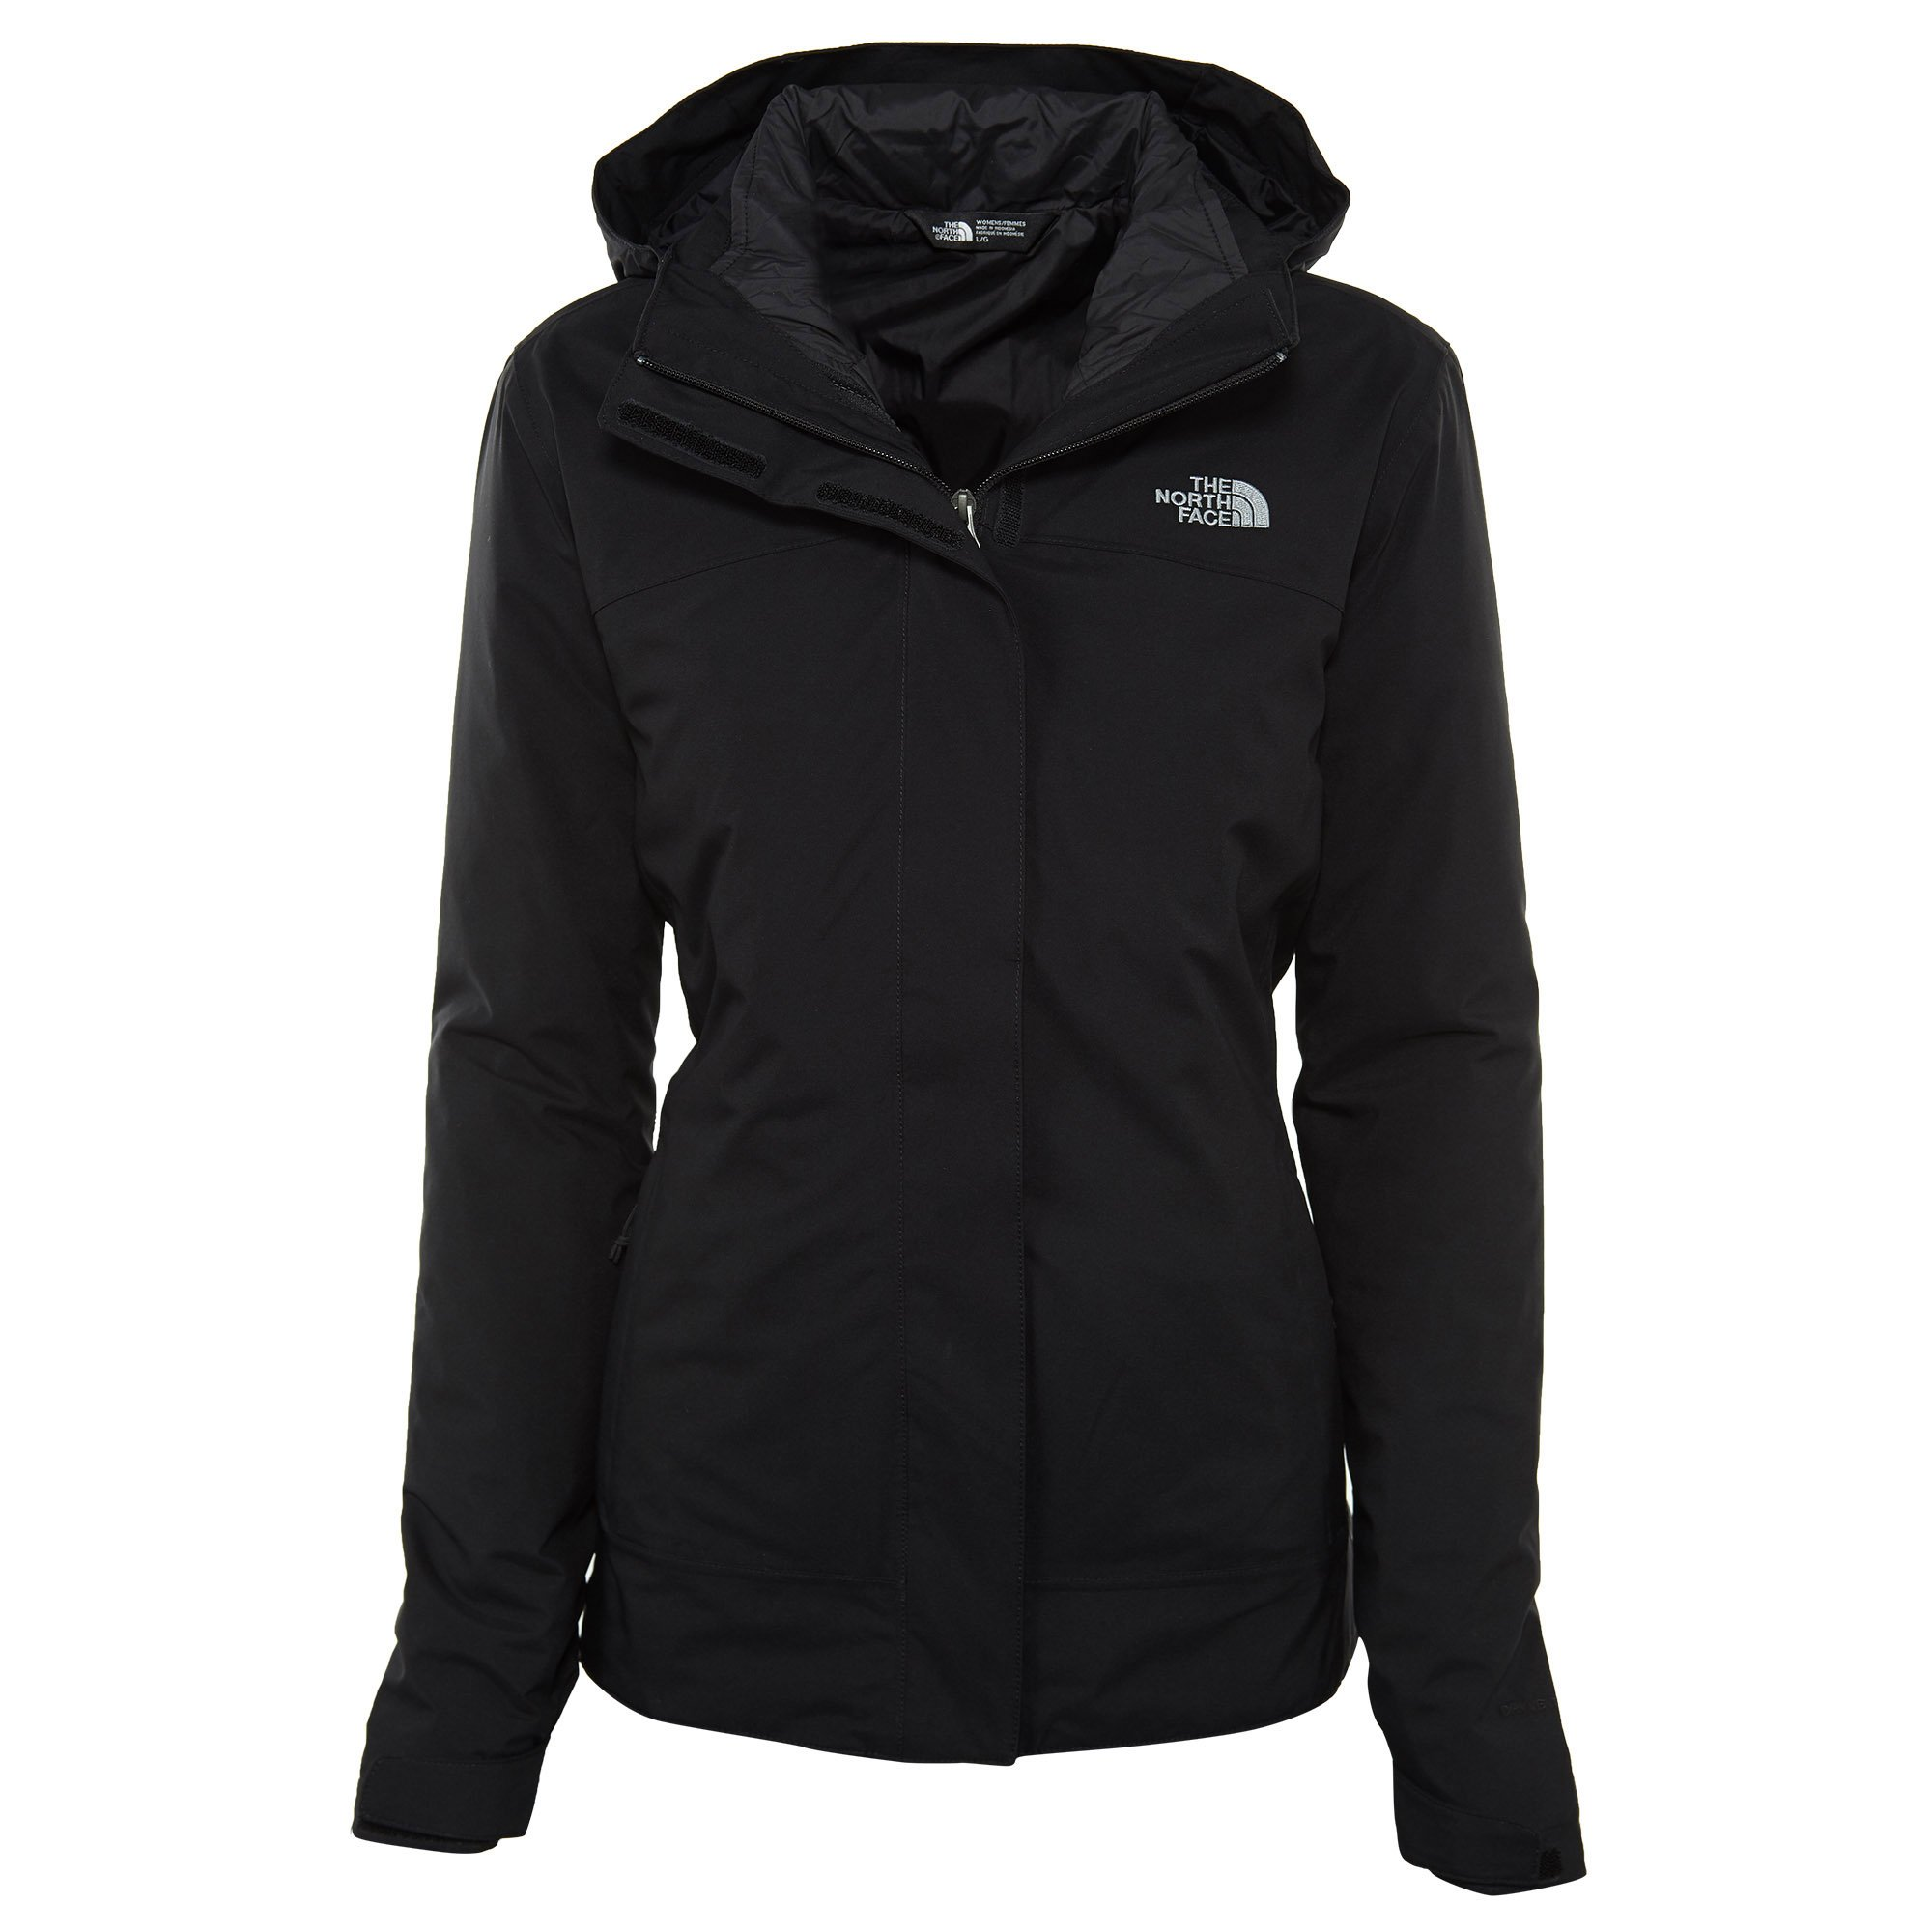 The North Face Carto Triclimate Jacket Womens Style: A2VHB-JK3 Size: XL